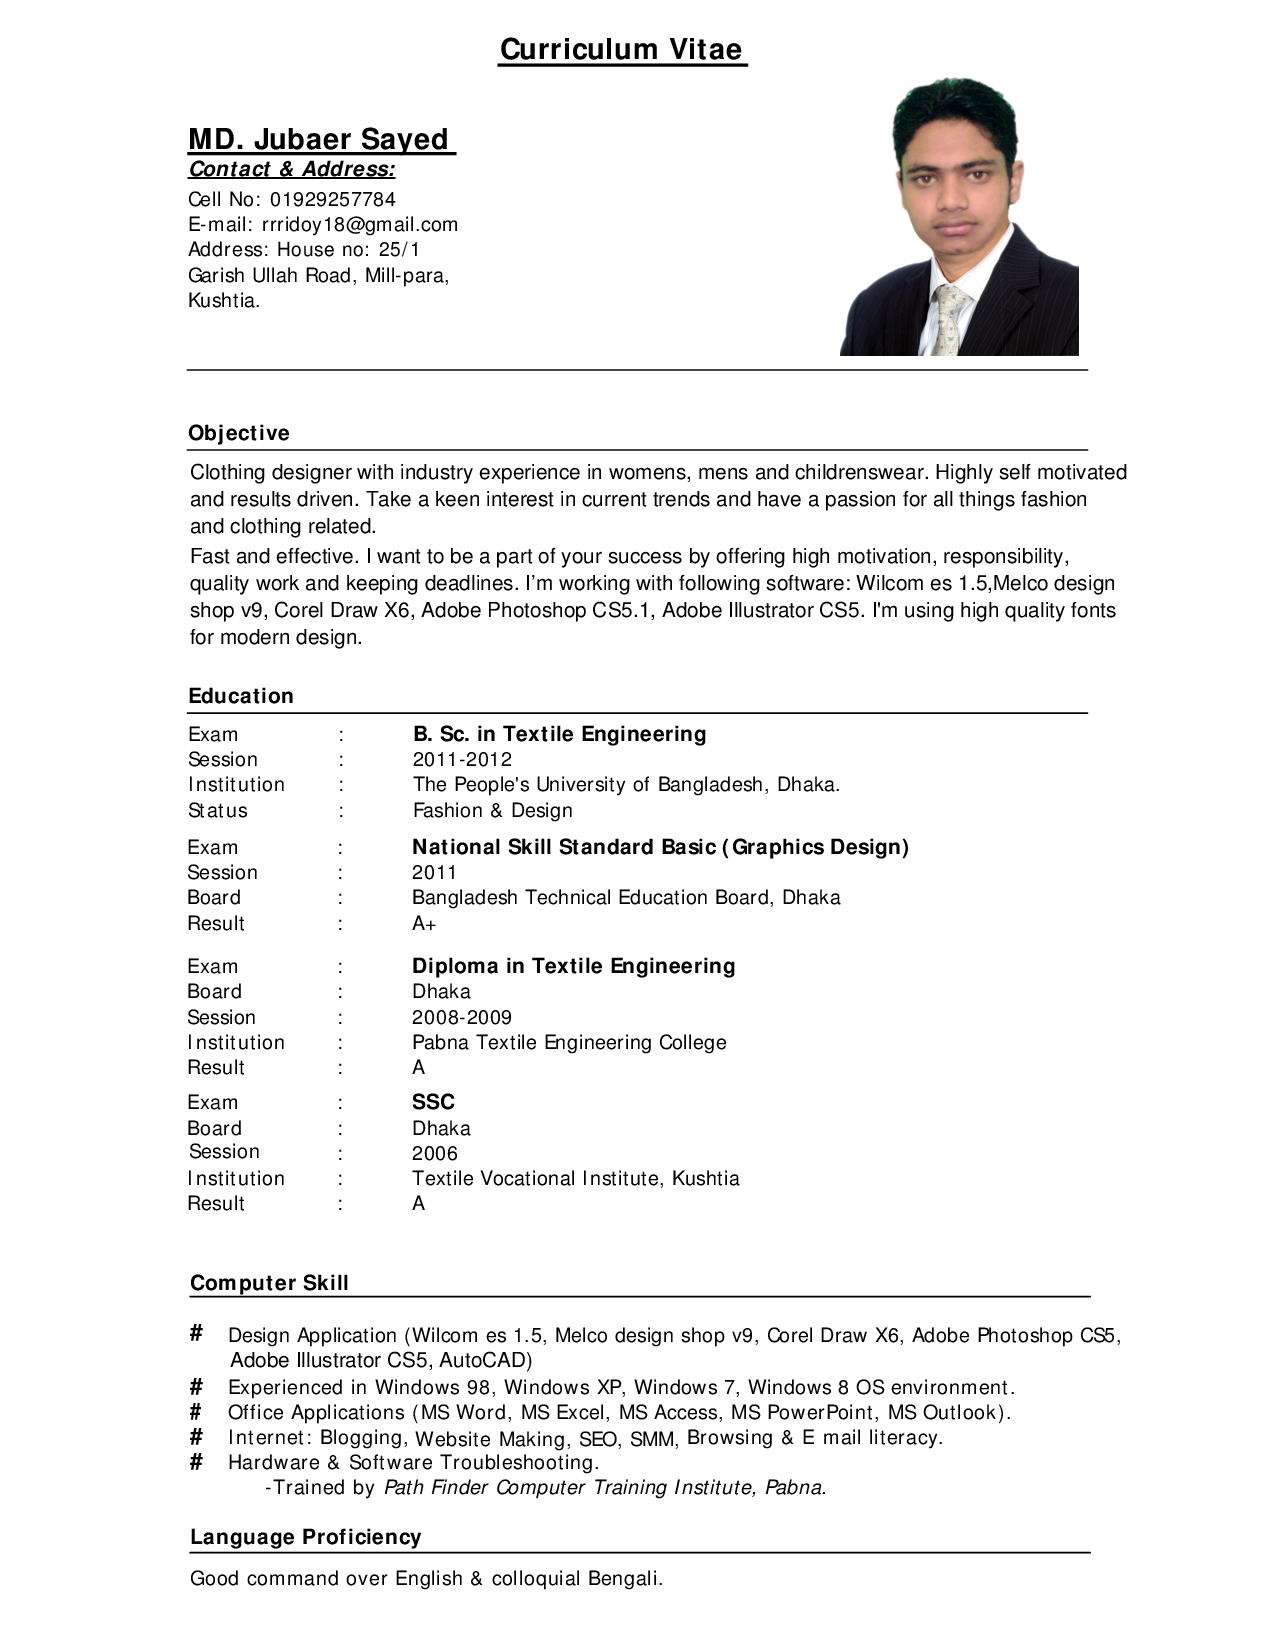 example resume computer skills and education for curriculum vitae resume samples pdf curriculum vitae resume samples pdf